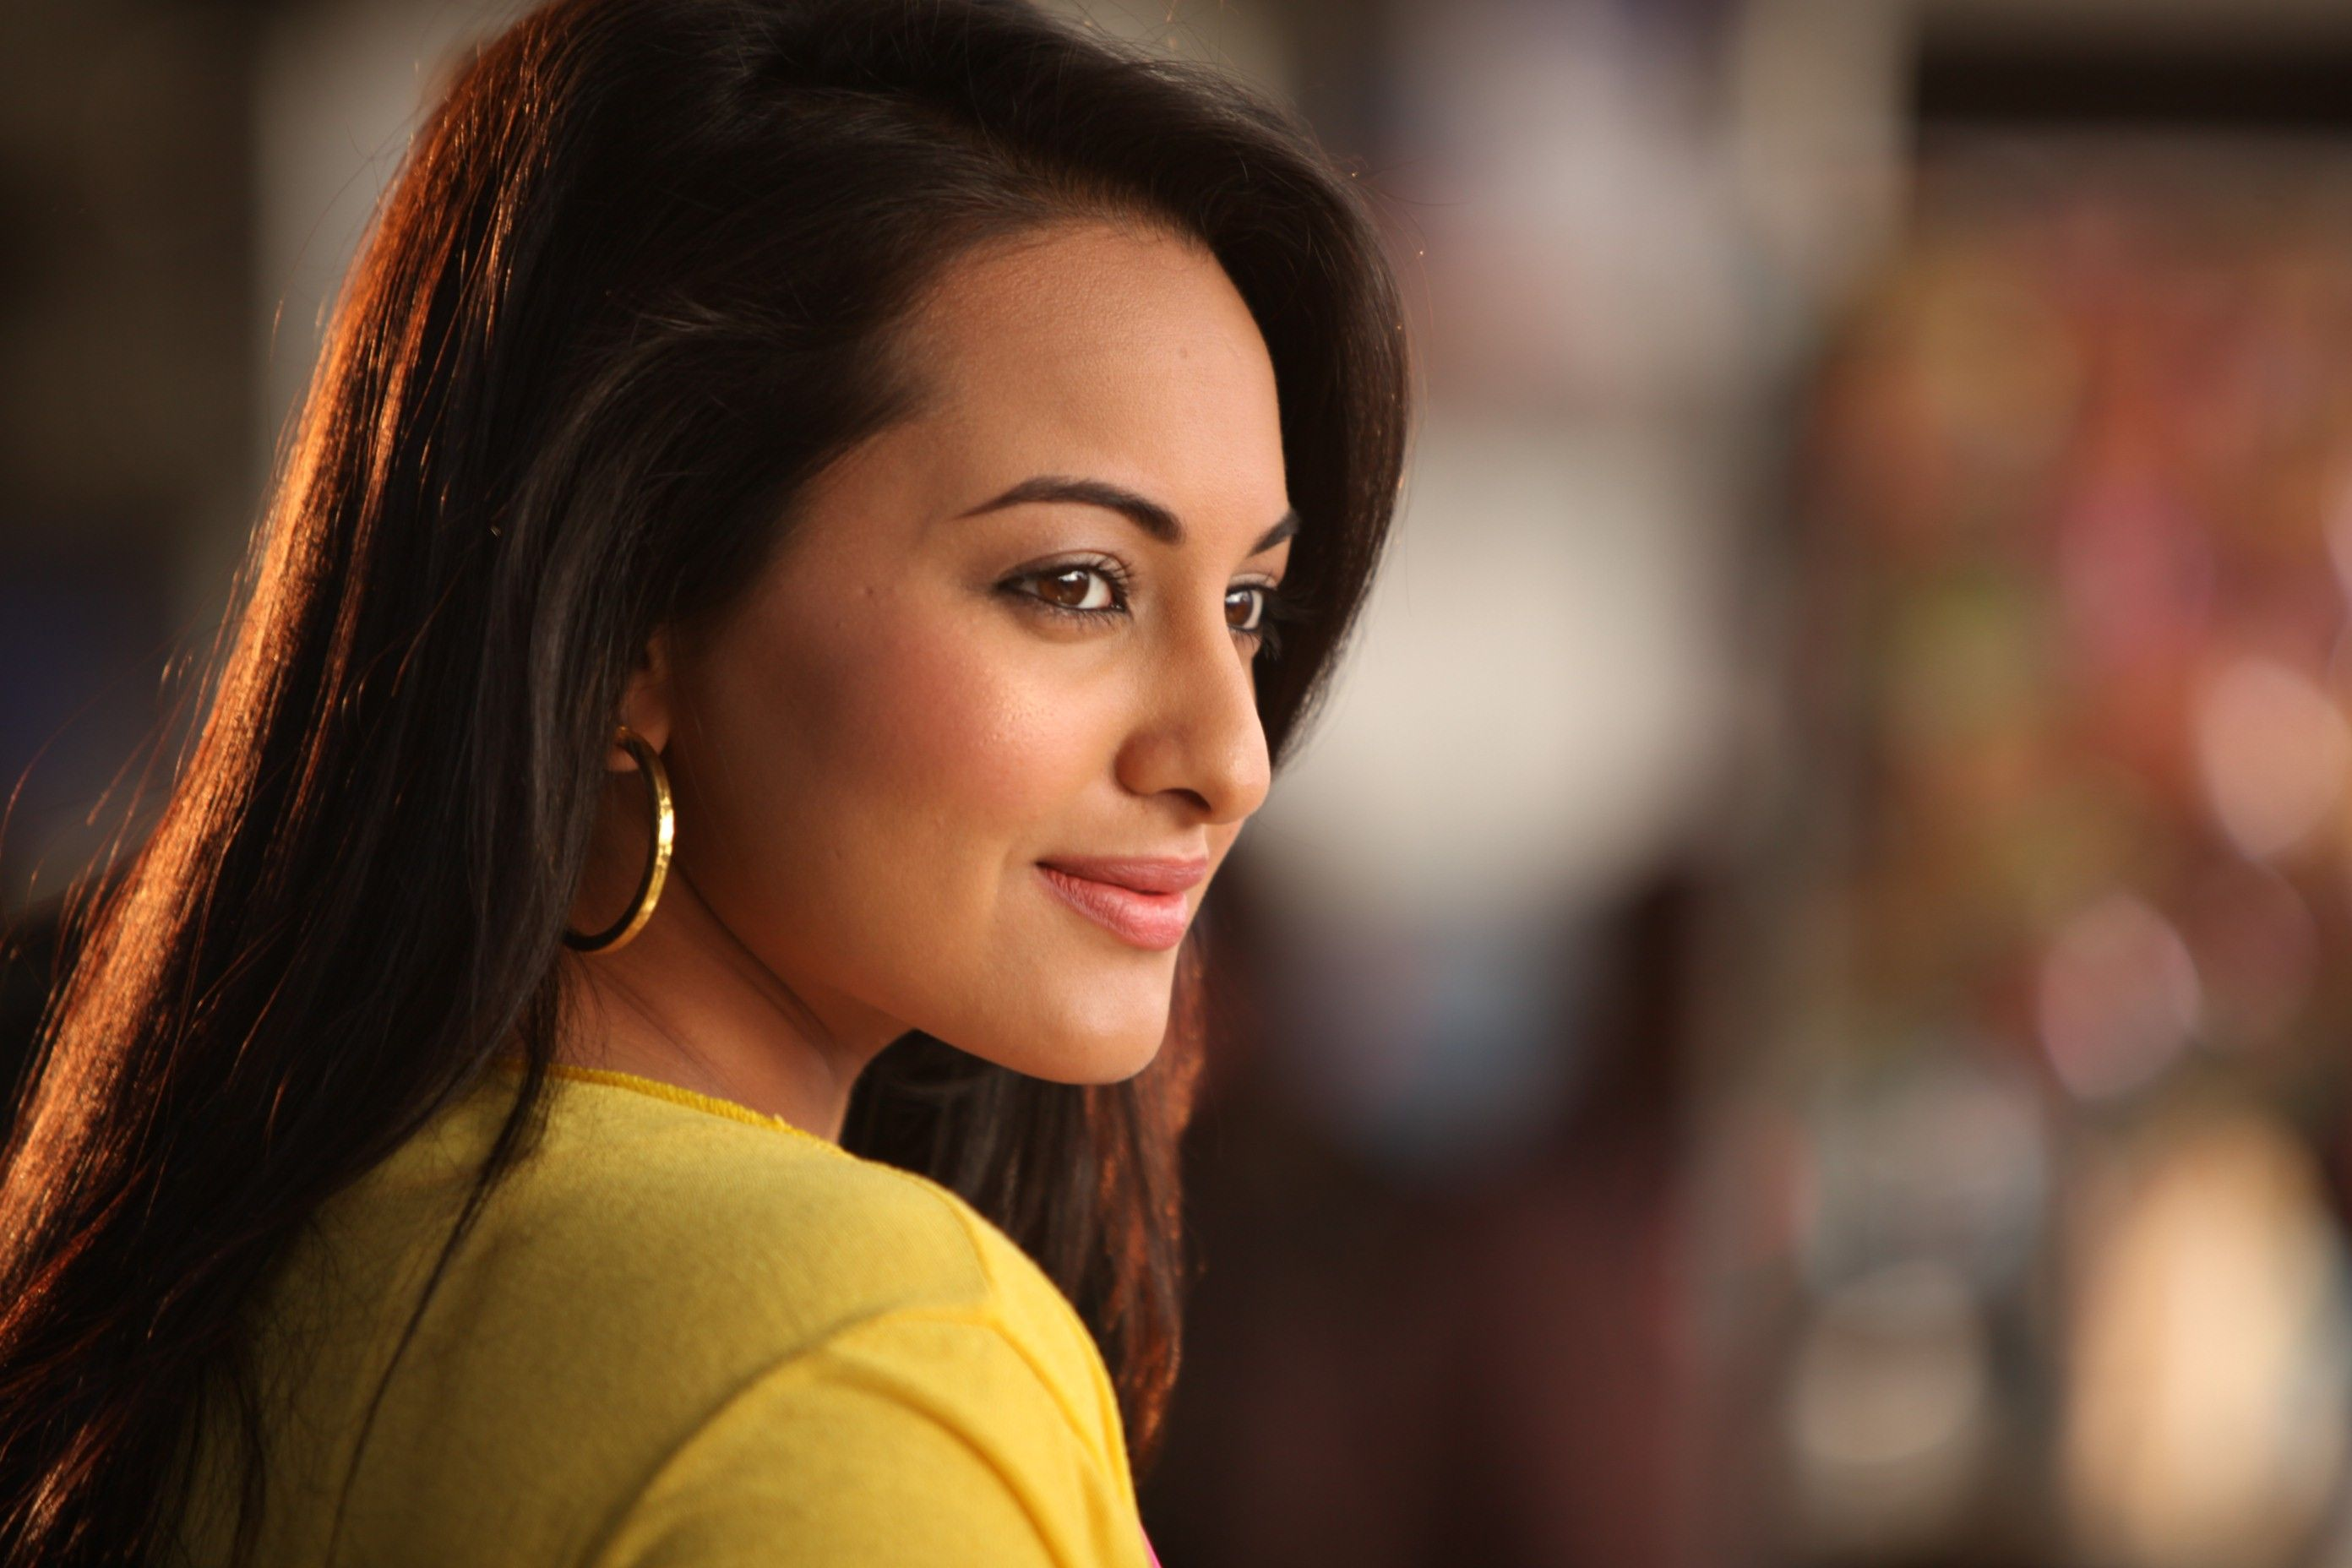 sonakshi sinha hd wallpapers pics in 1080p | sonakshi sinha in 2018